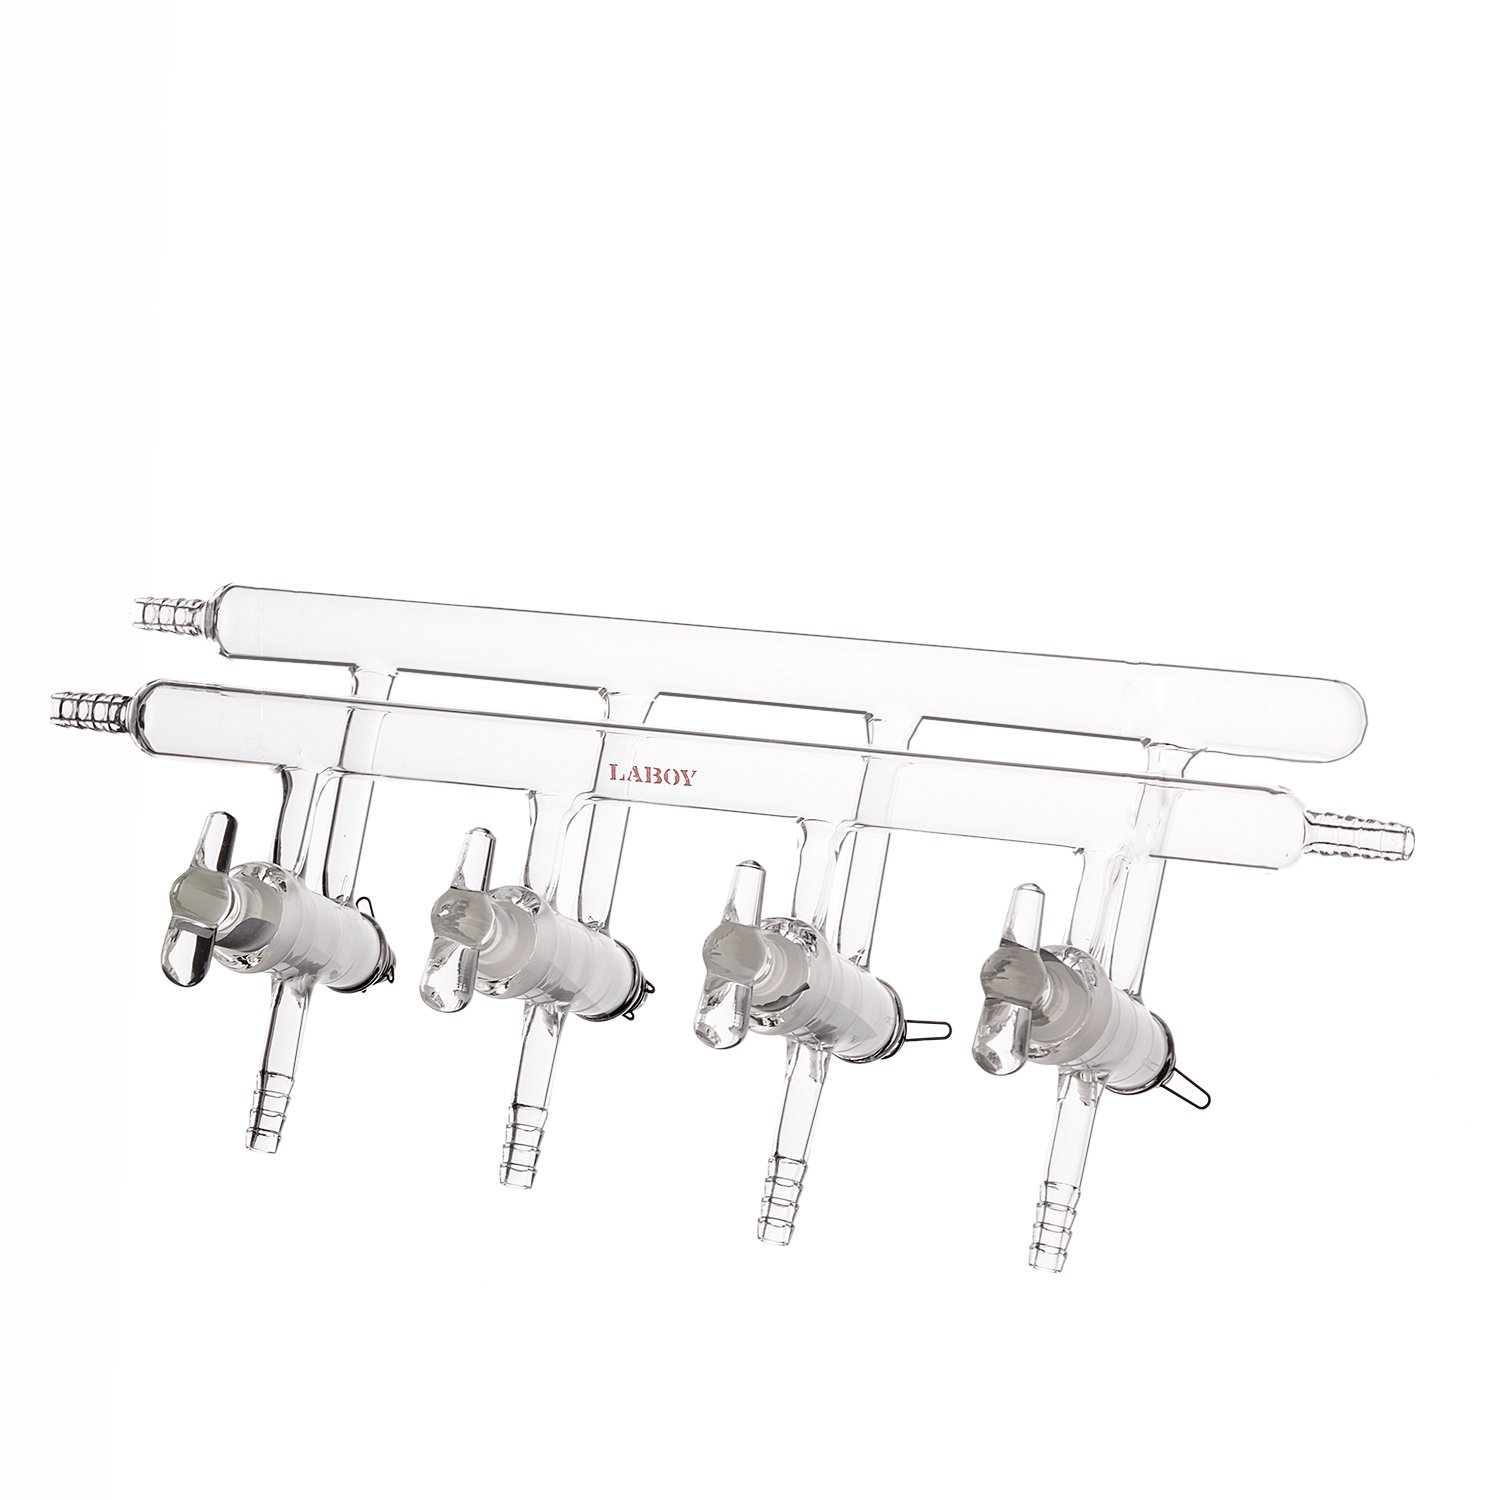 Laboy HMM011311 Glass Double Manifold Vacuum Gas Distributor for Schlenk Line with 4-Port Solid Glass Stopcock Front-Left-Right and Rear-Left Hose Opens 450 mm Length by LABOY